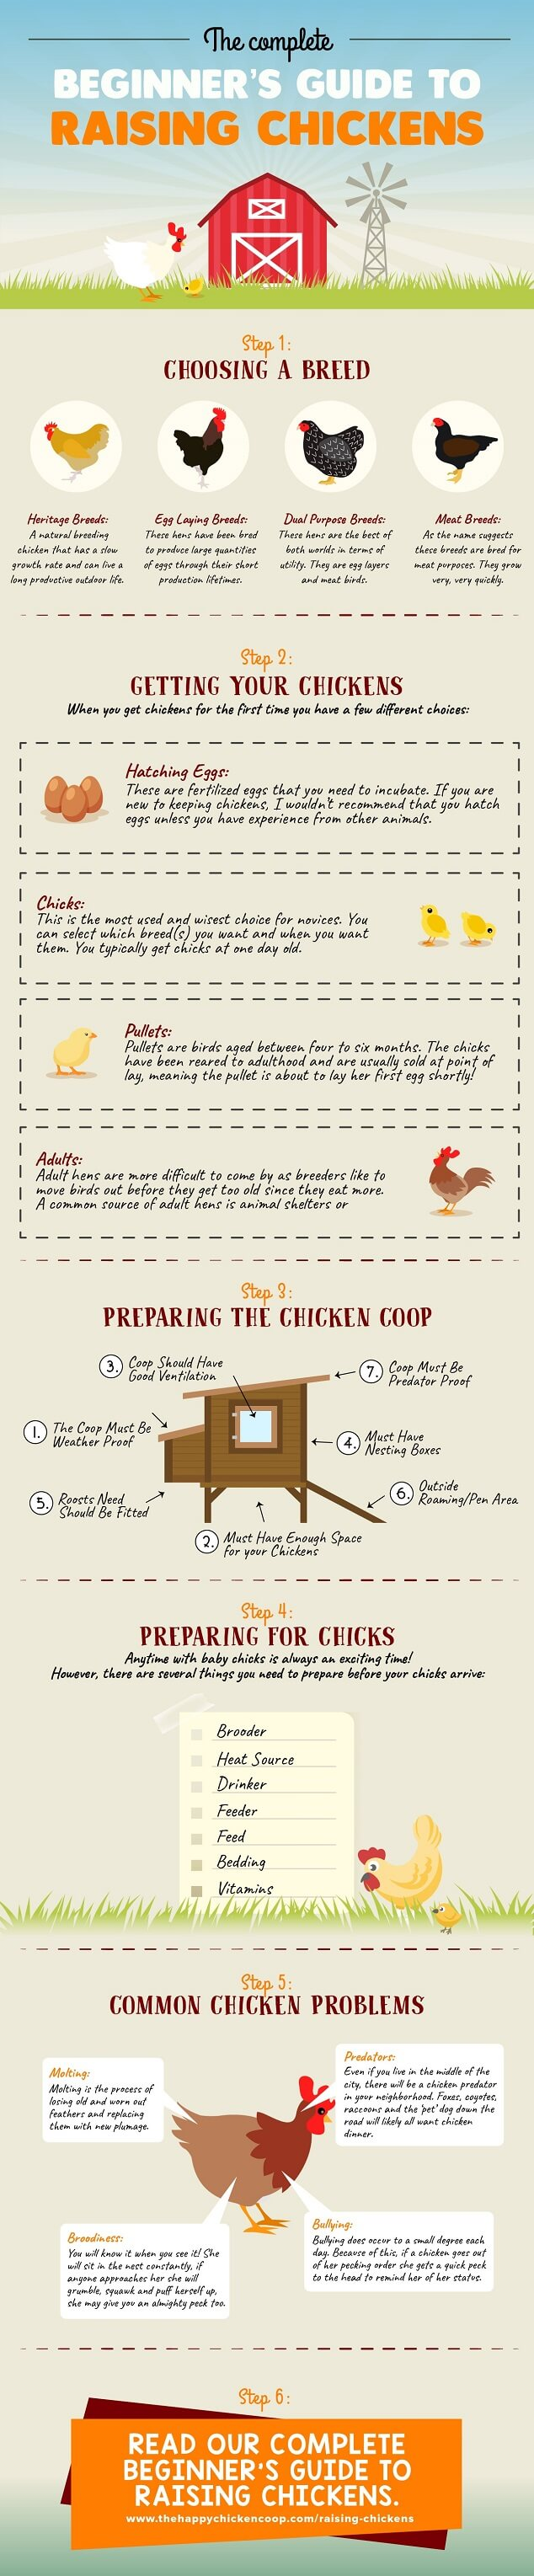 Beginners Guide to Raising Backyard Chickens Small Infographic